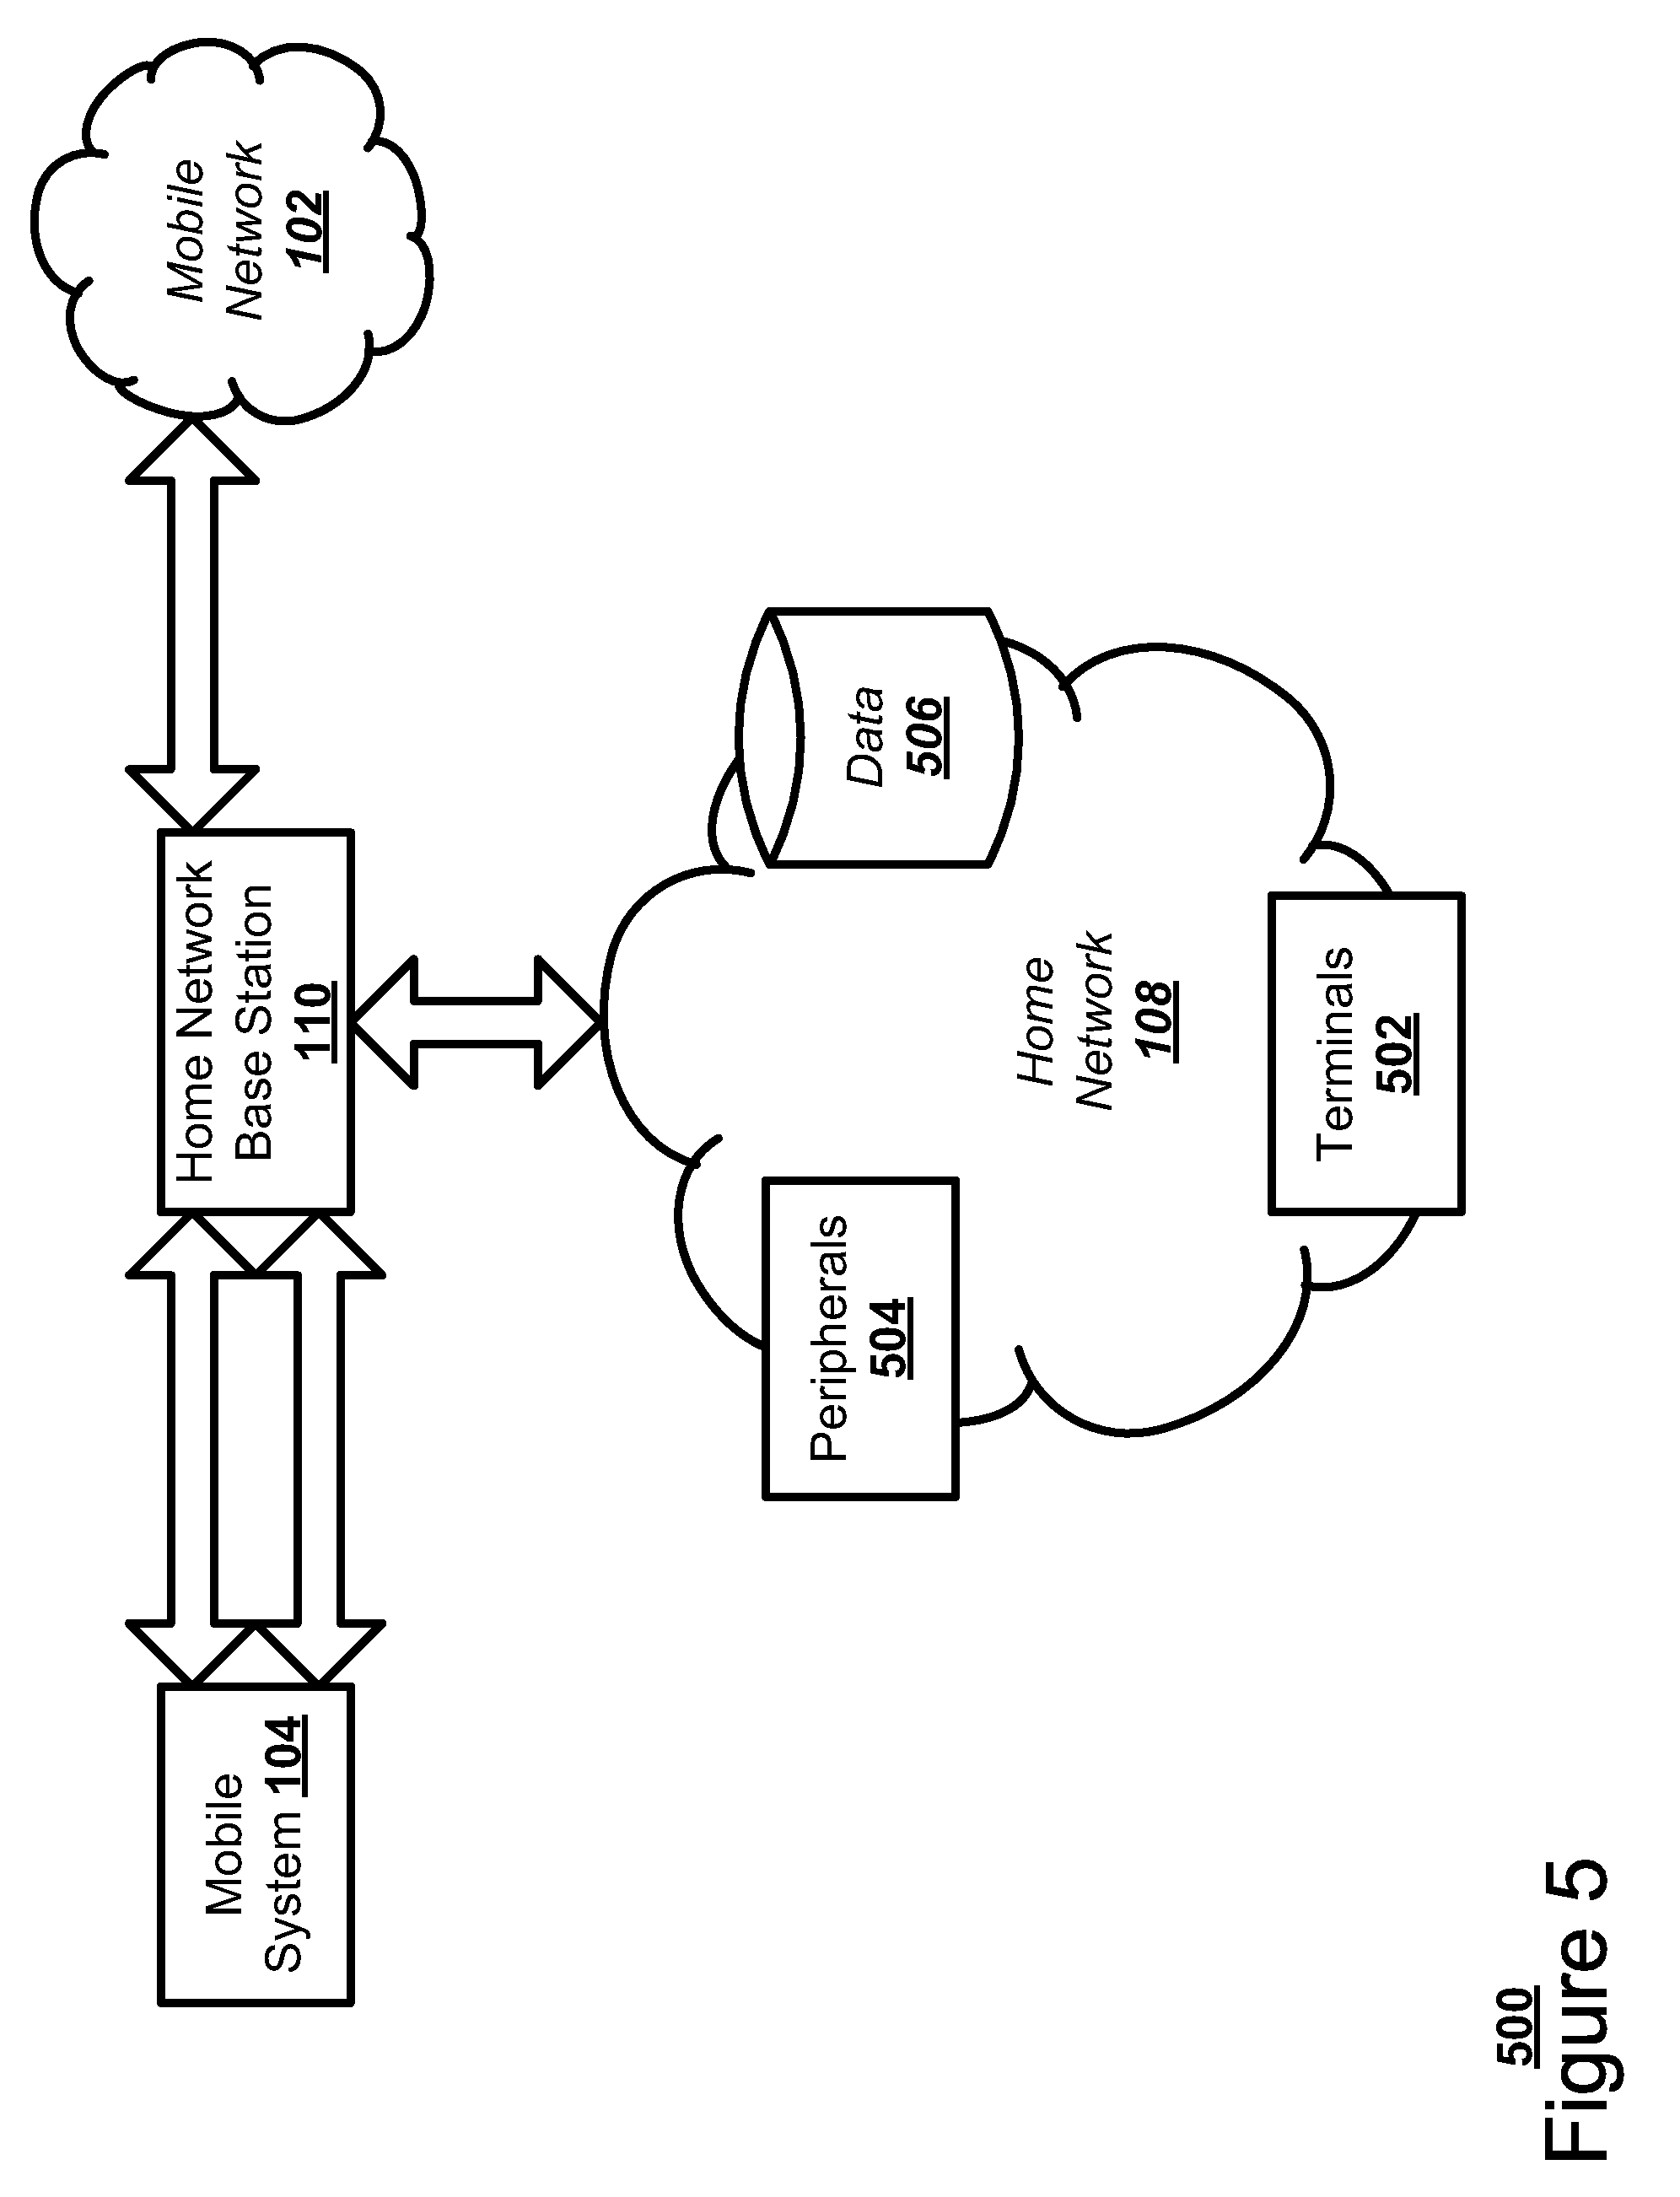 us20100242089 privacy control between mobile and OSI Model Diagram patent drawing